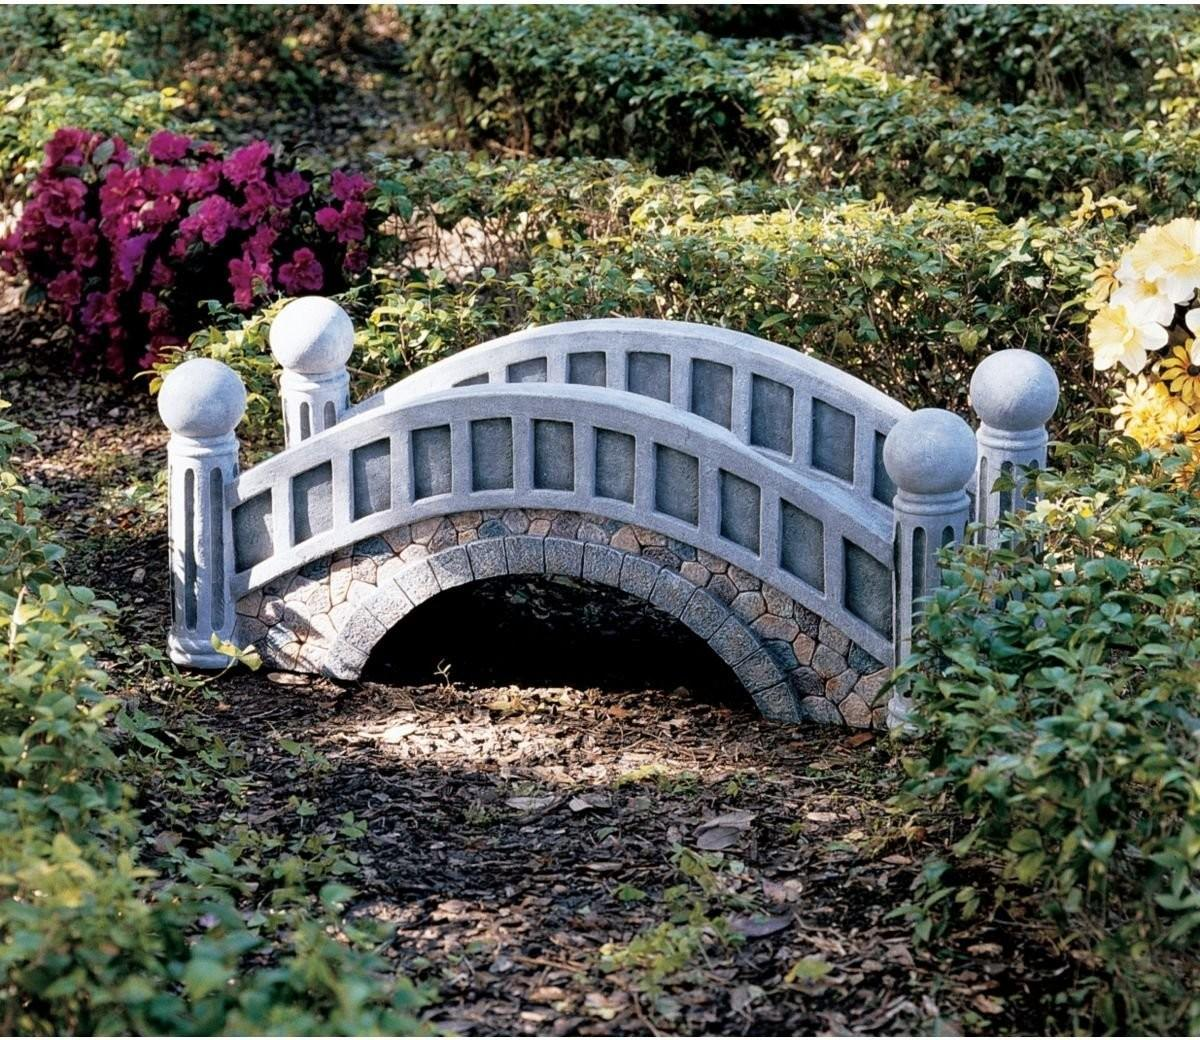 Small Beautiful Fairy Tale Garden Bridges